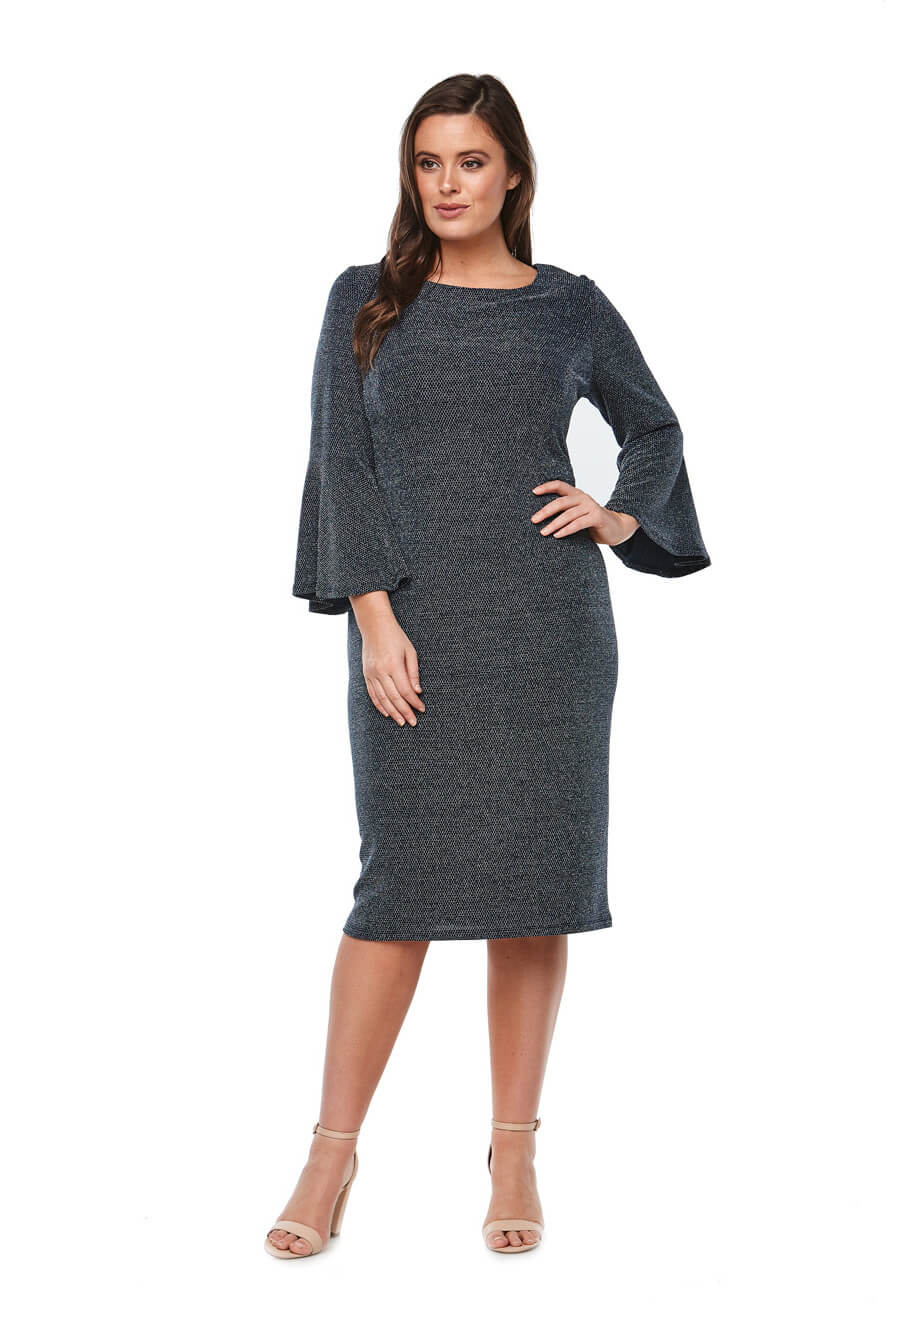 stretch jersey cocktaildress with bell sleeves